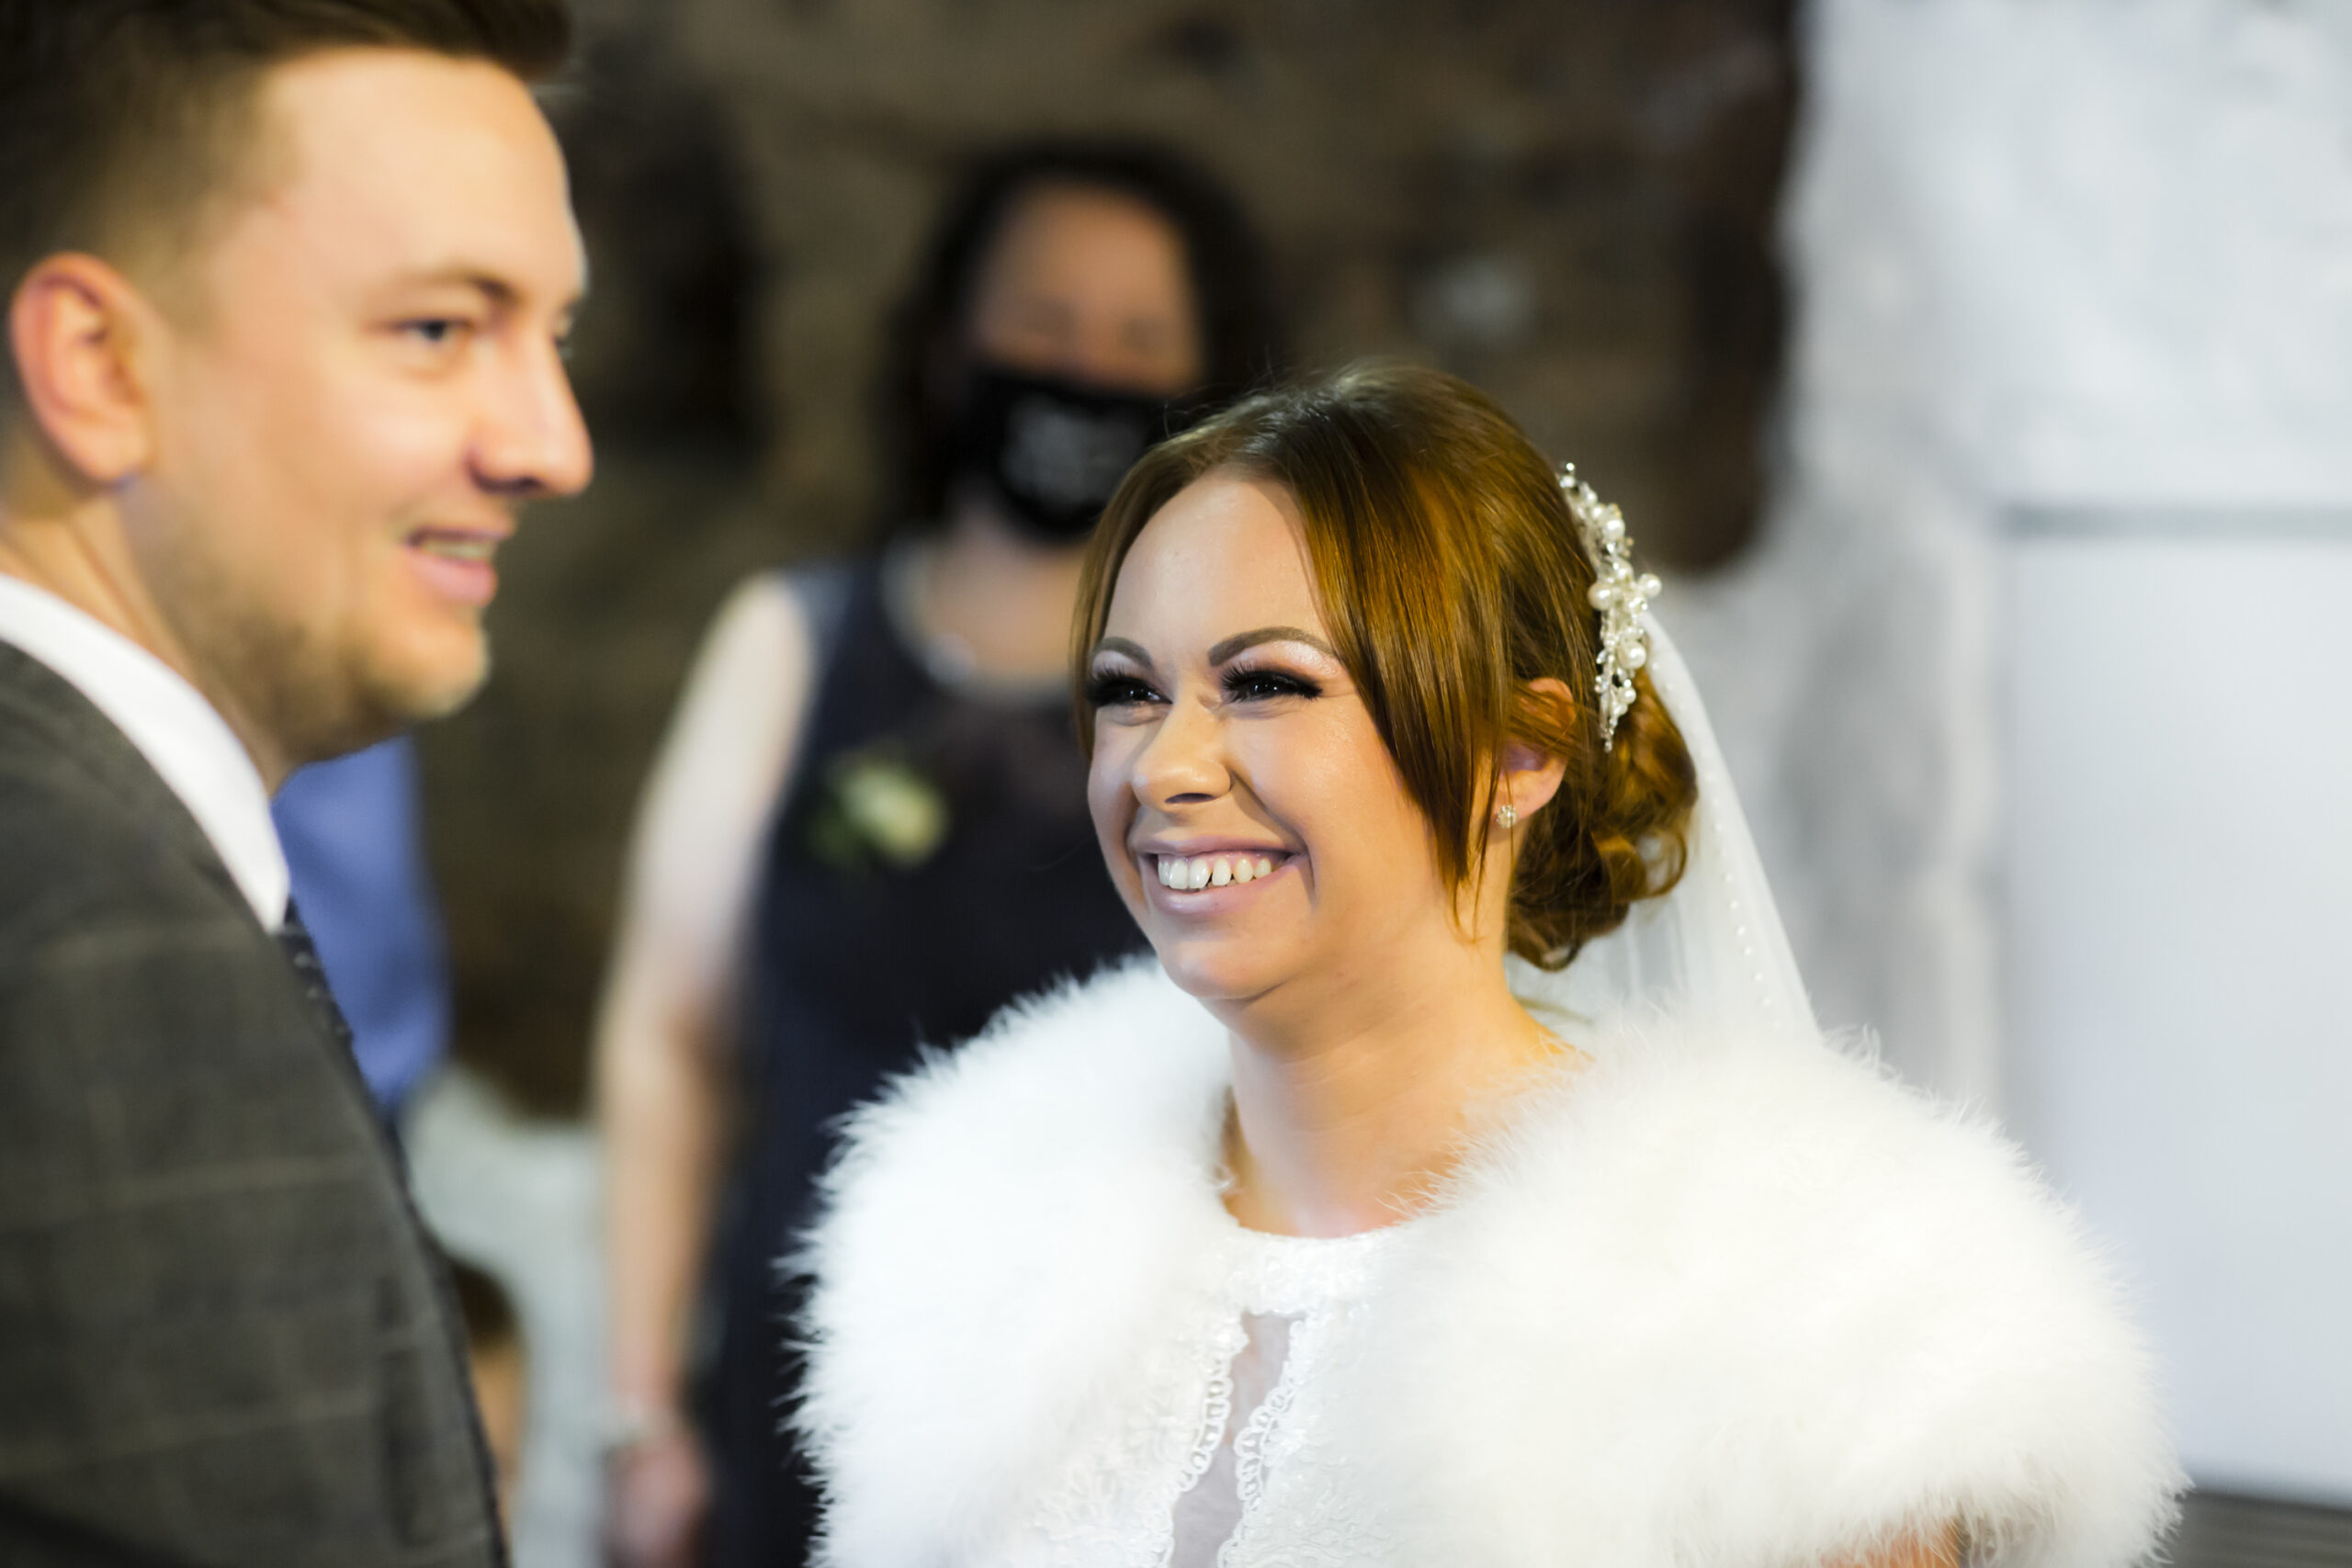 happy bride looks at groom at marriage ceremony at blacksmiths old shop in gretna green